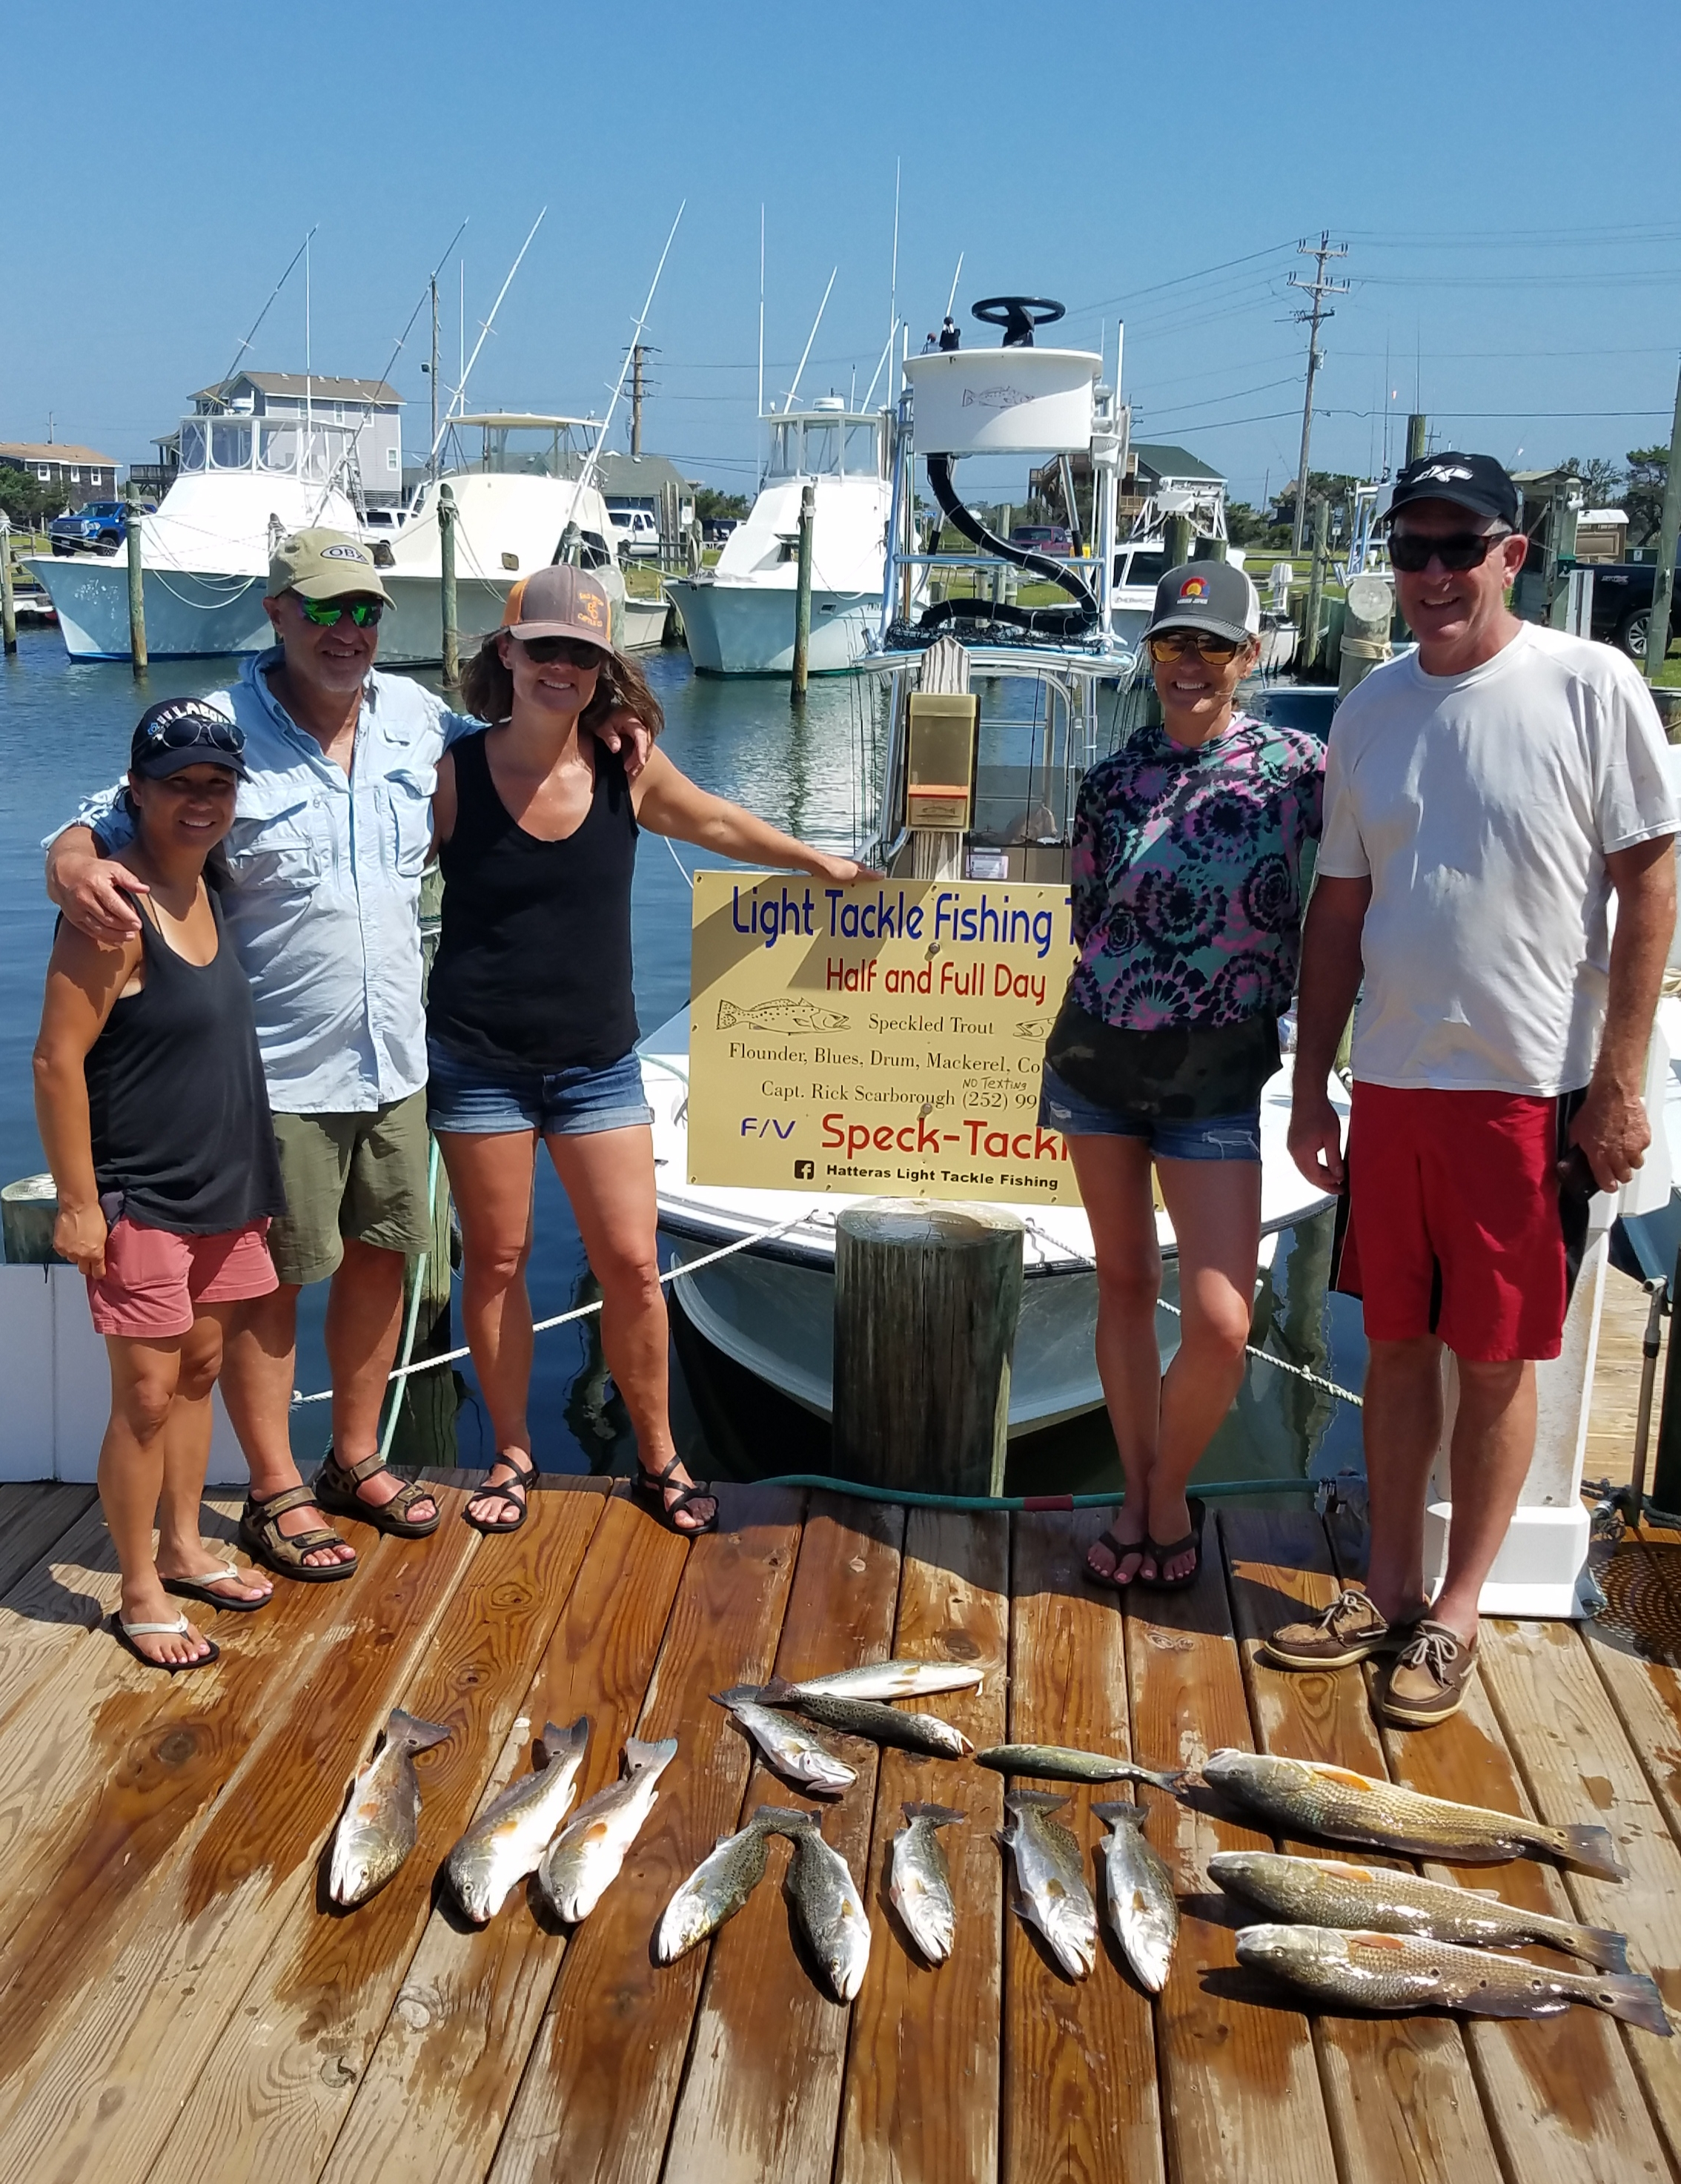 Speck-Tackler Teach's Lair Inshore Fishing Charters